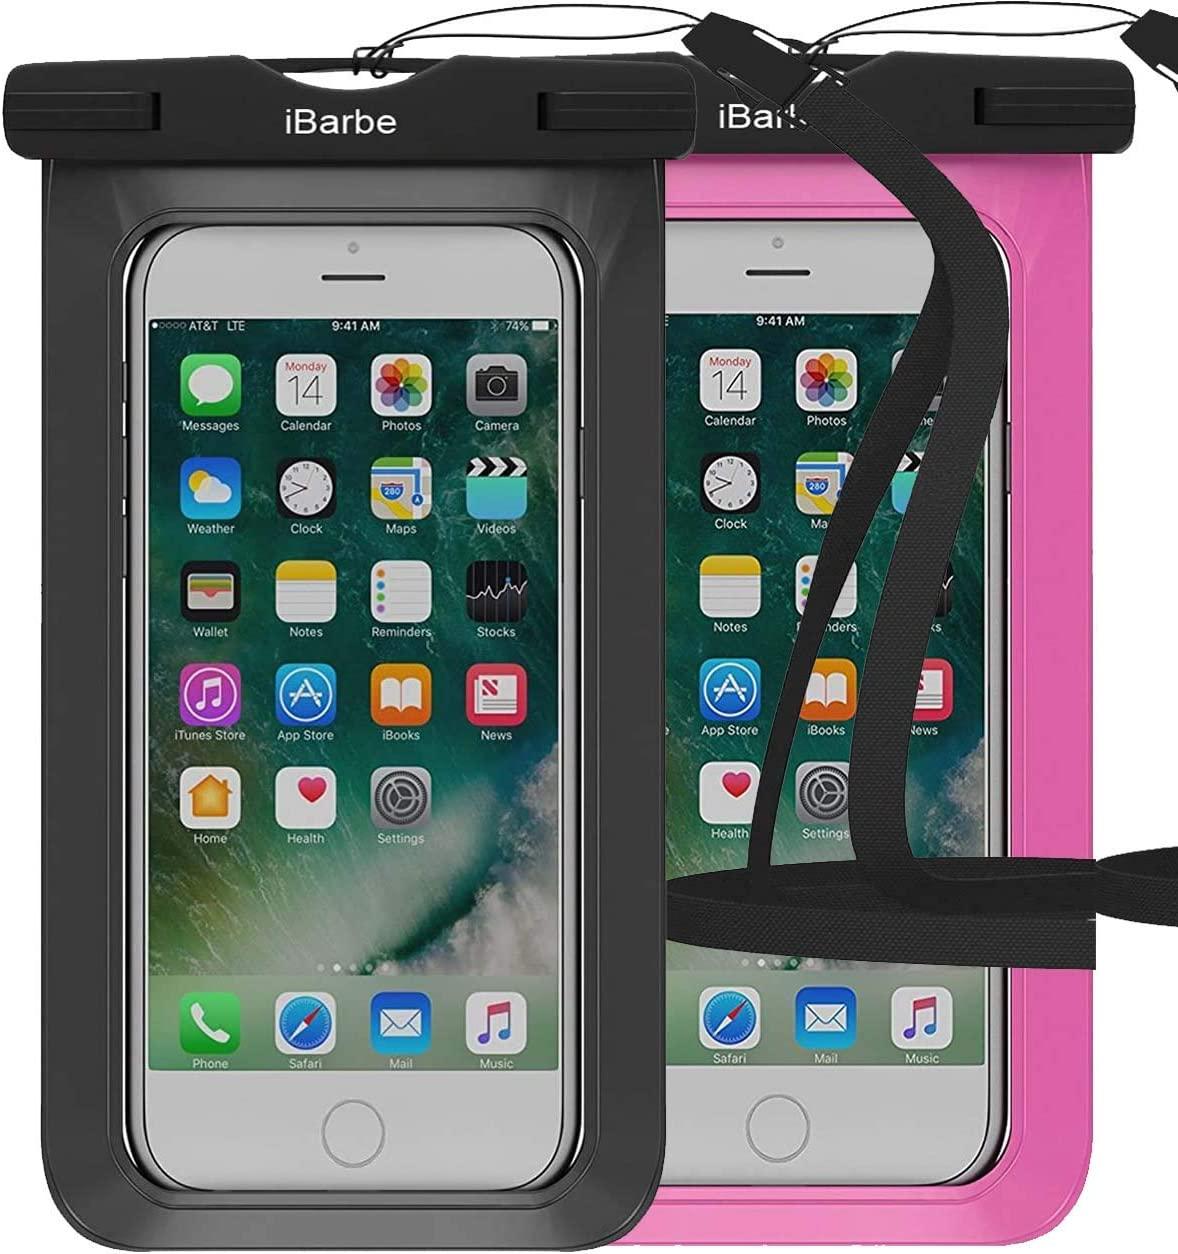 Waterproof Case,2 Pack Universal Cell Phone Dry Bag Pouch Underwater Compatible with iPhone 12 Mini 11 PRO MAX X XR XS MAX 8 Plus 7 7 Plus 6S 6 6S Plus SE etc.to 6.3 inch,Black+Rose